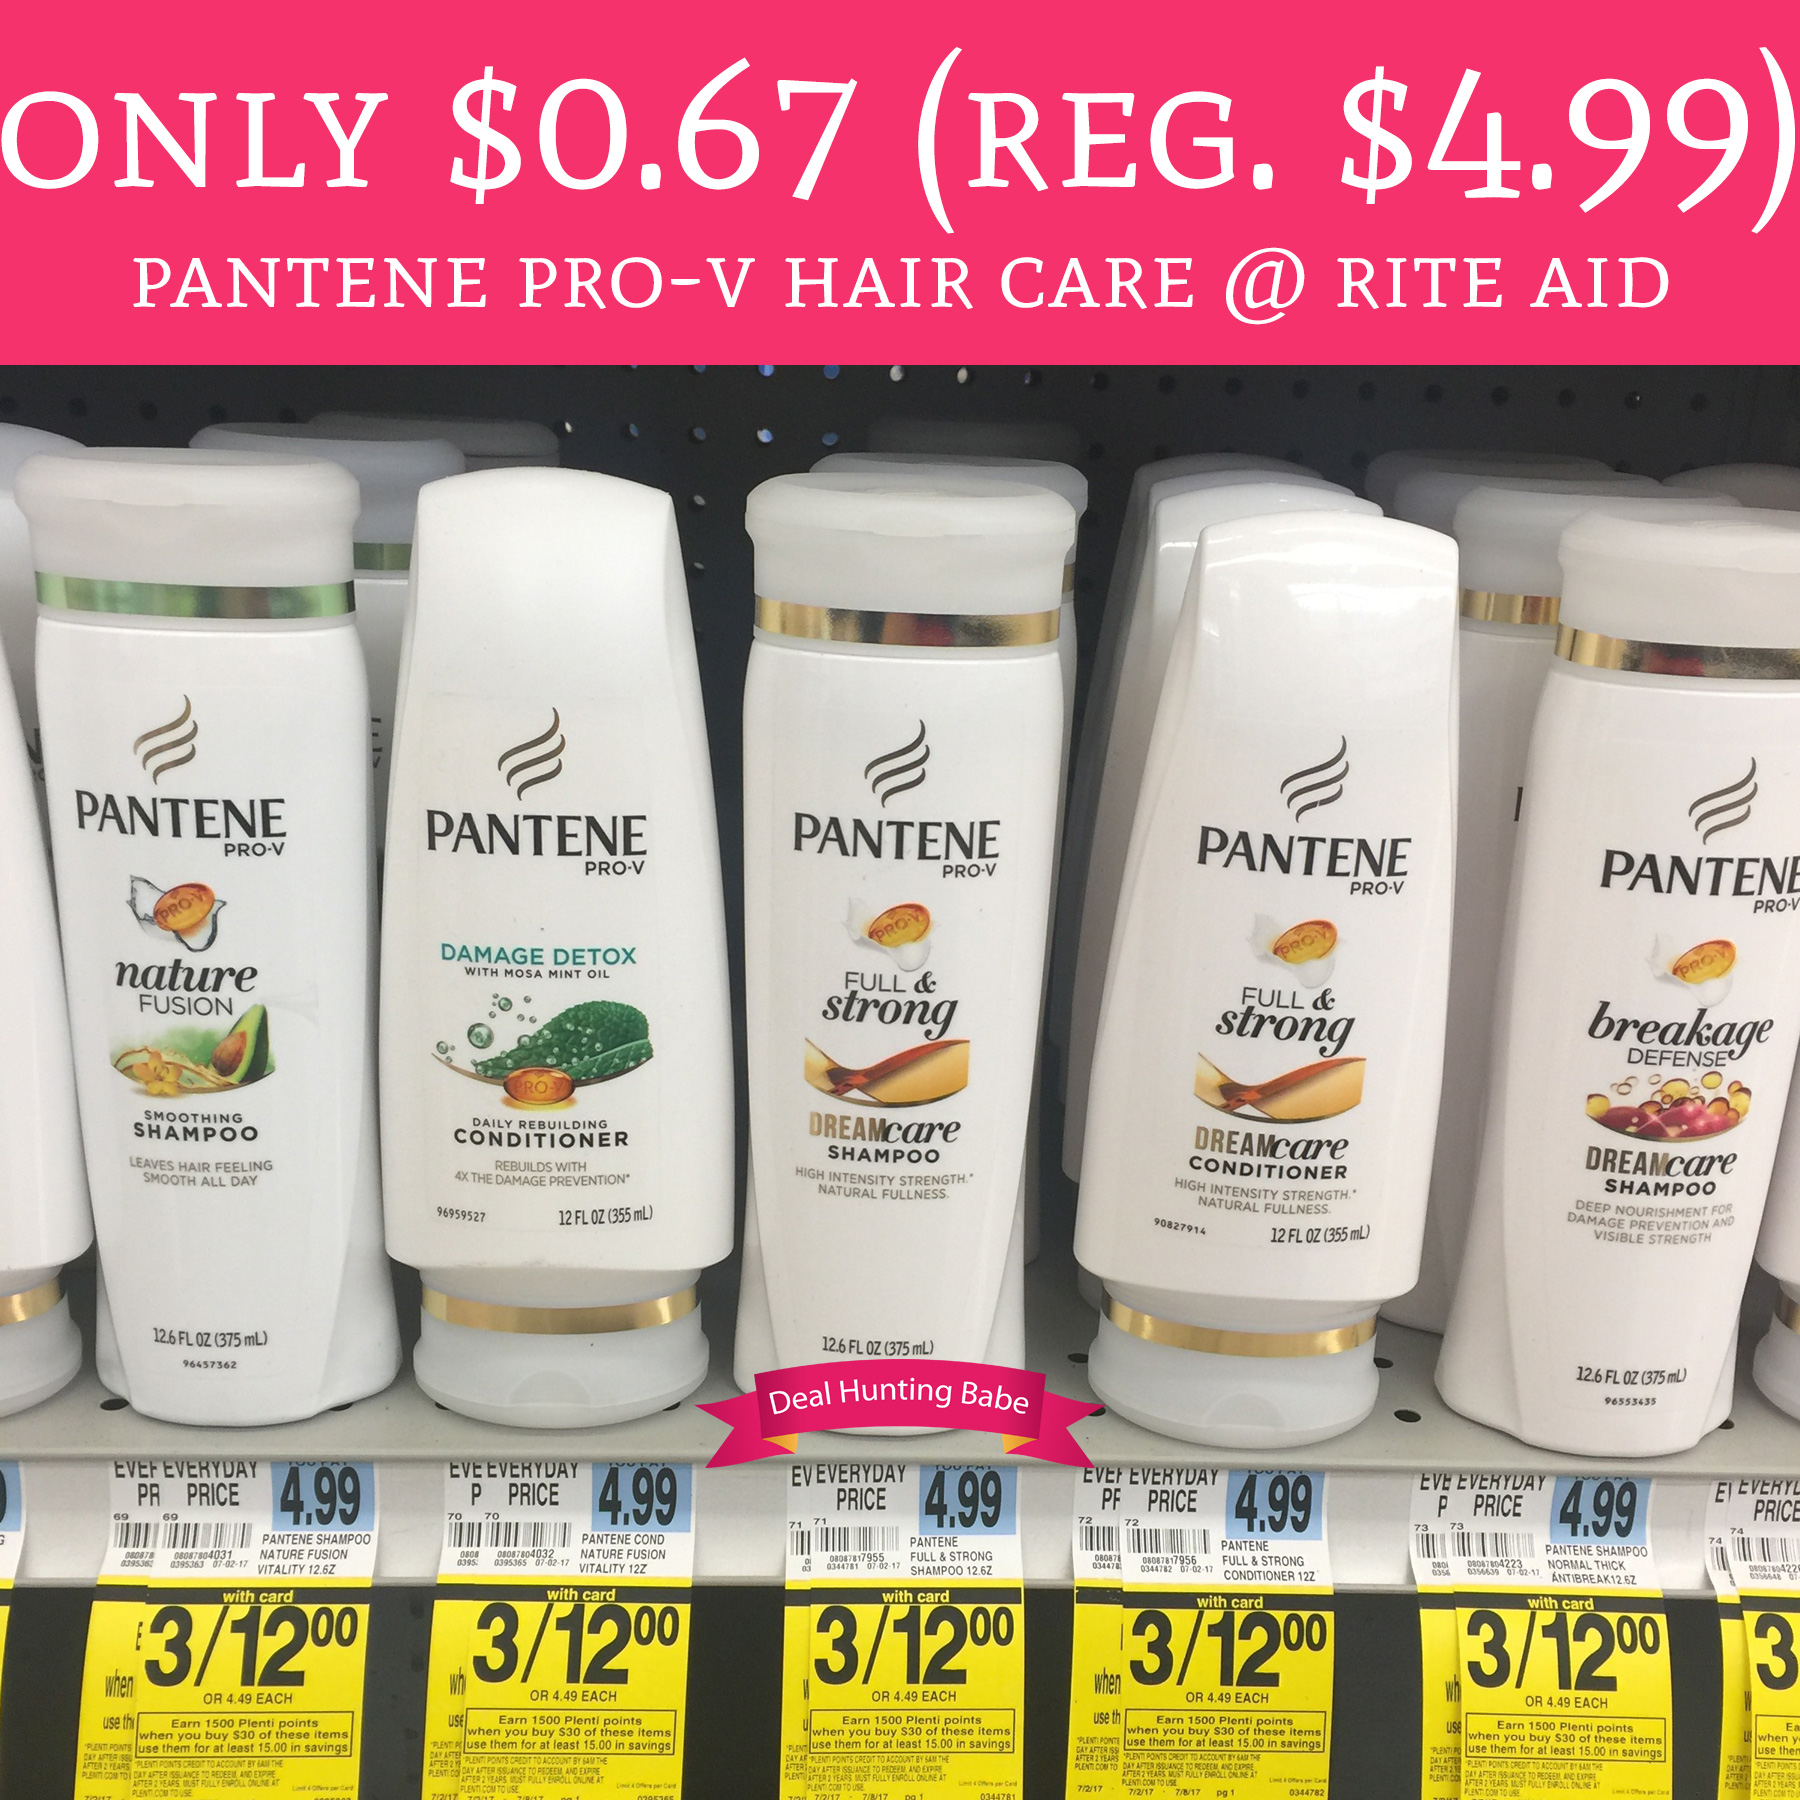 Rite Aid Stock Quote: Only $0.67 (Regular $4.99) Pantene Pro-V Hair Care @ Rite